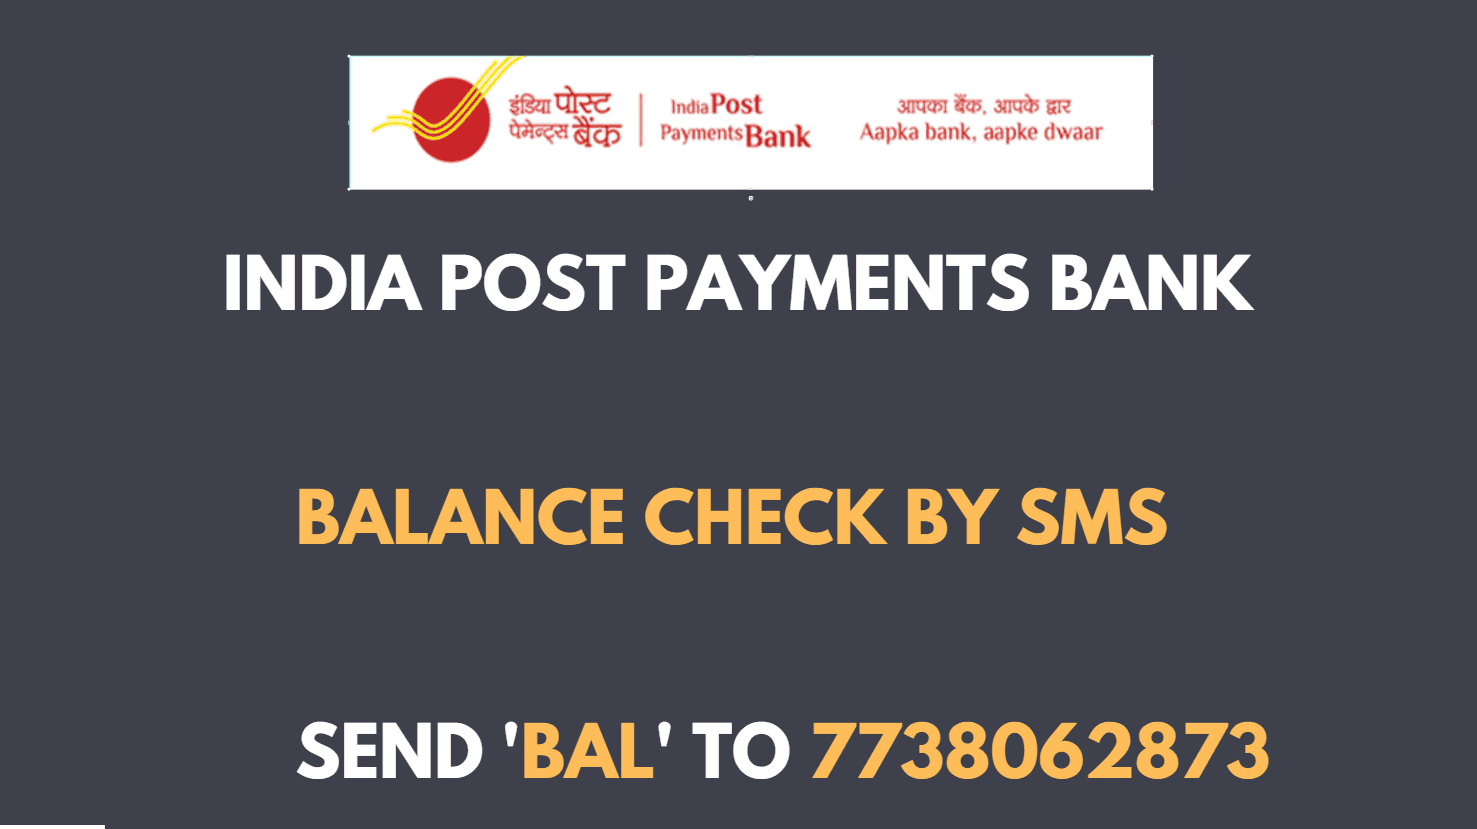 India Post Payments Bank Balance Check SMS Number